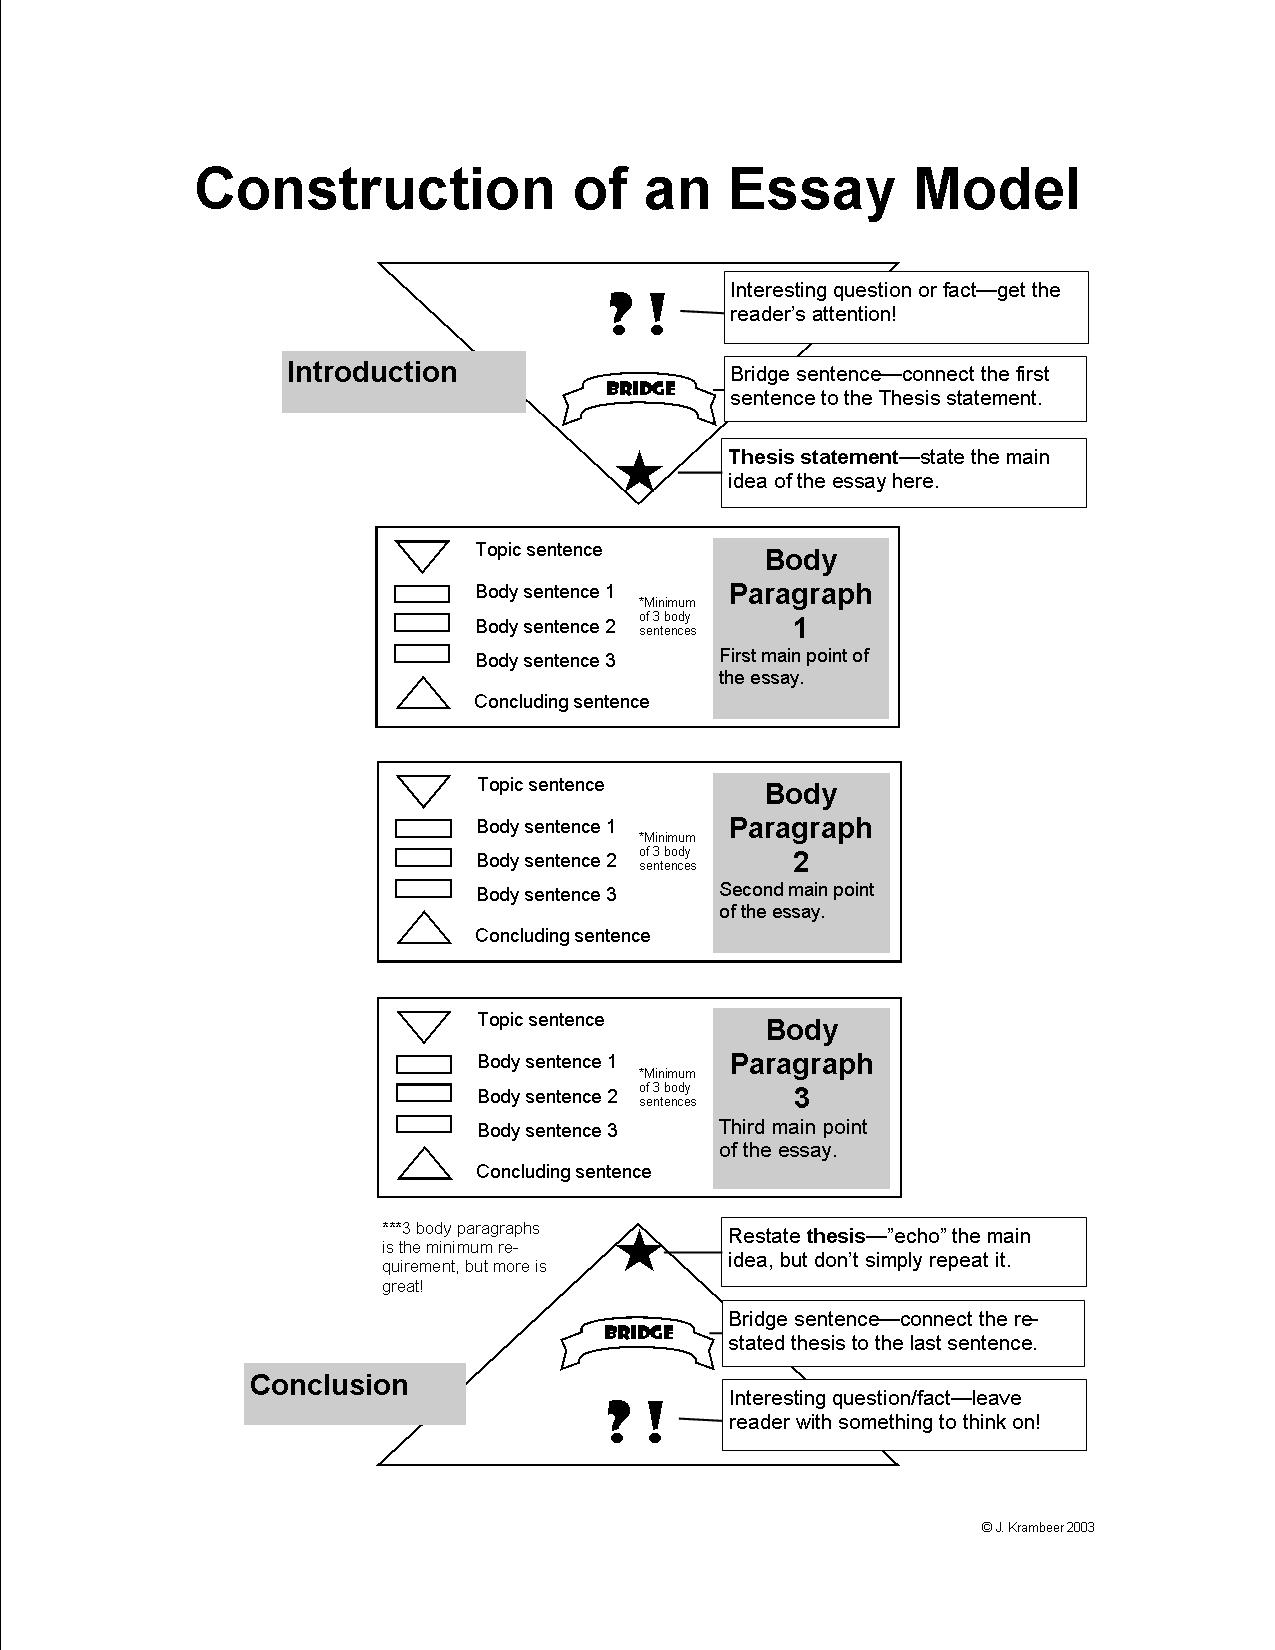 student essay models These sample essay outlines will help your students organize and format their ideas before writing an essay or research paper for language arts, social studies, and.